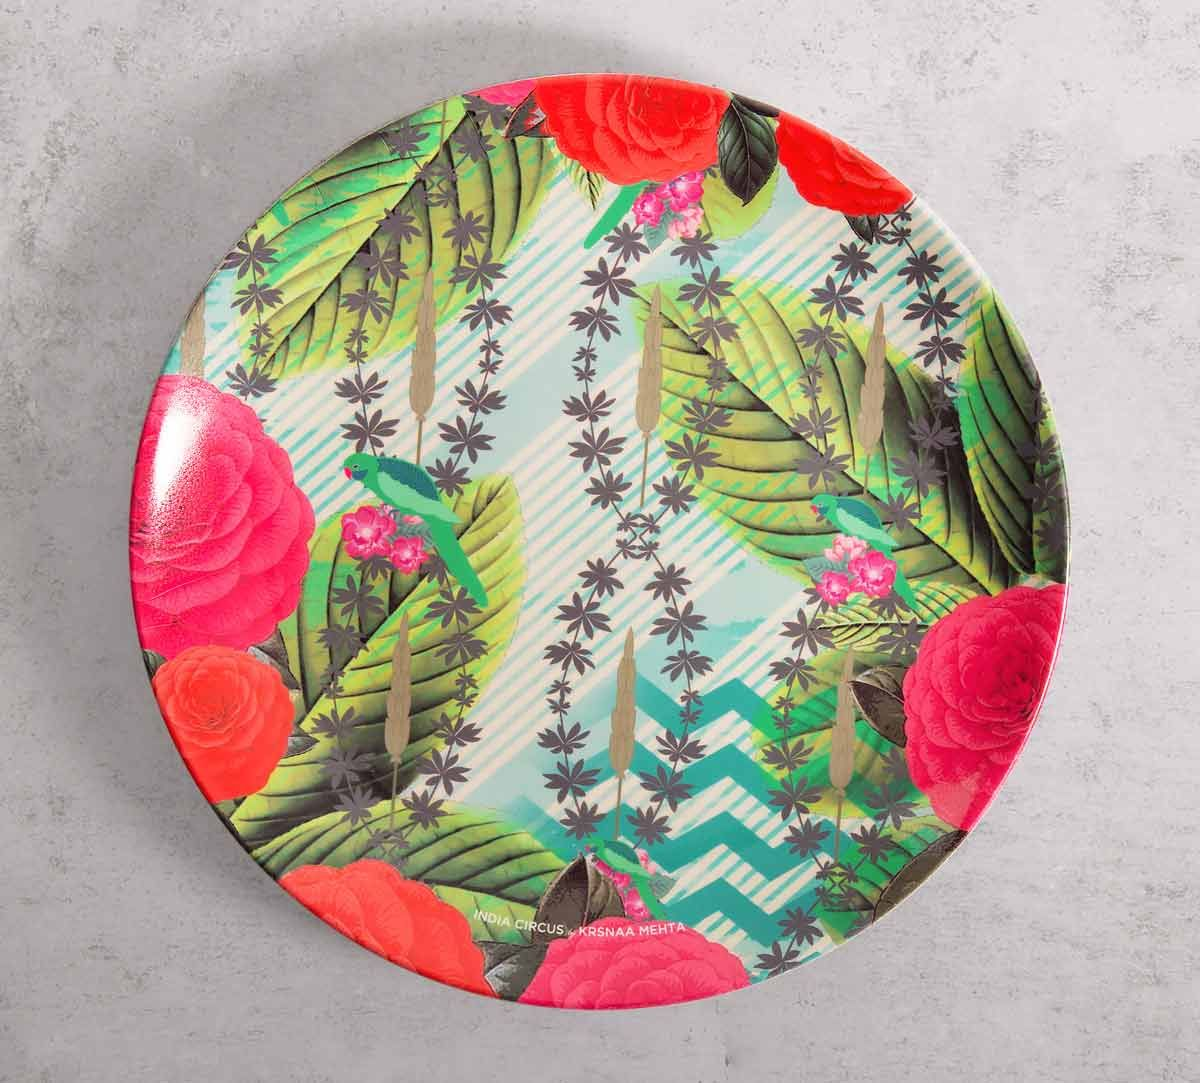 India Circus Herbs of Captivation 10 inch Decorative and Snacks Platter